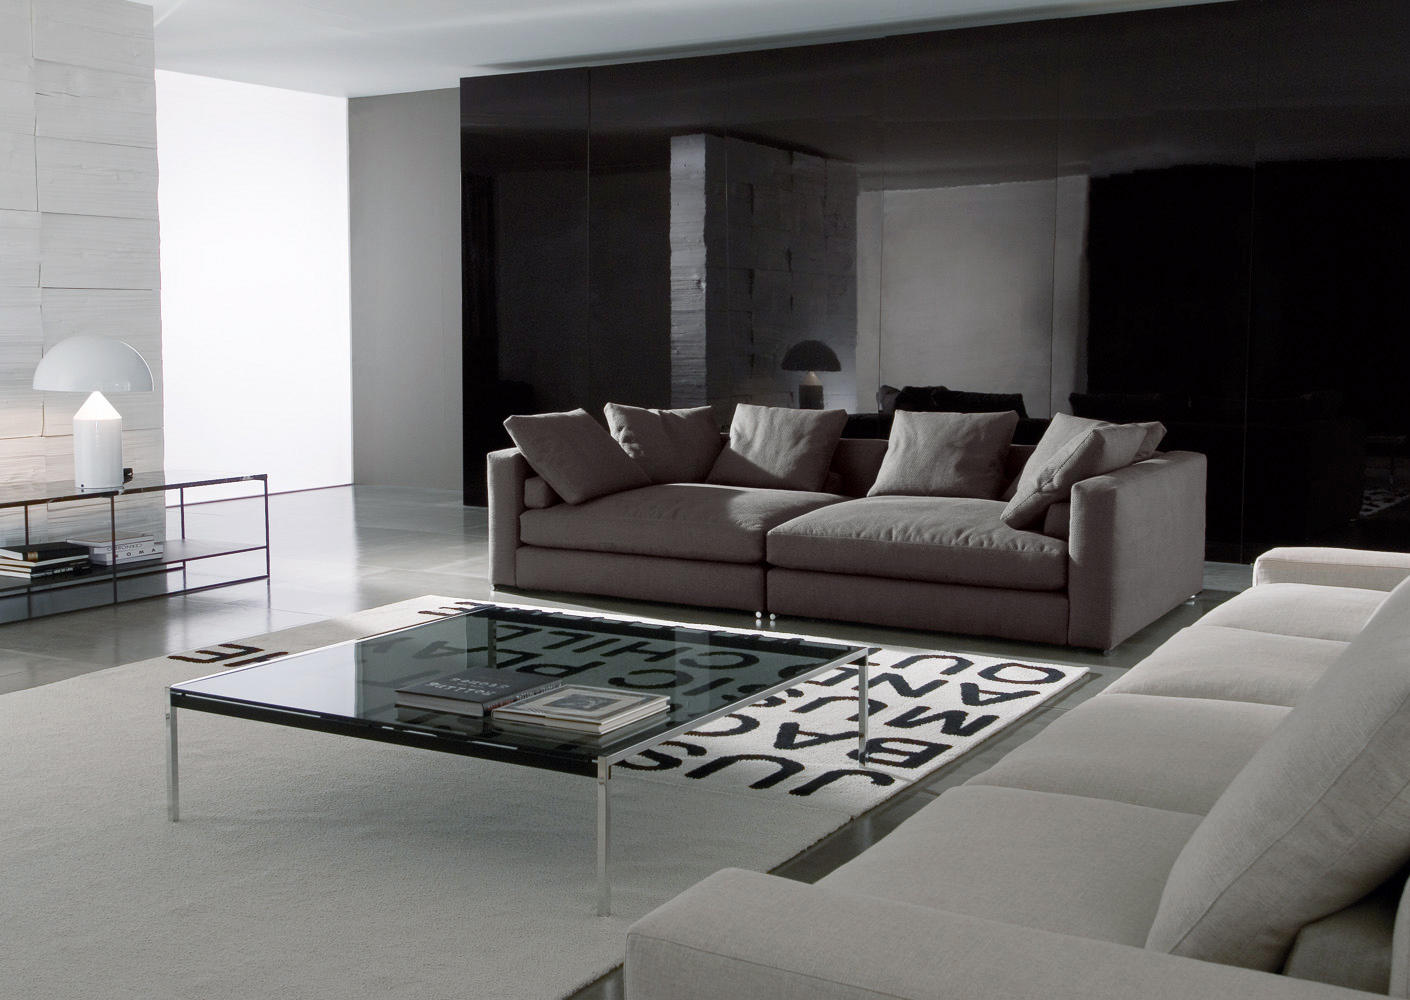 jagger lounge sofas from minotti architonic. Black Bedroom Furniture Sets. Home Design Ideas